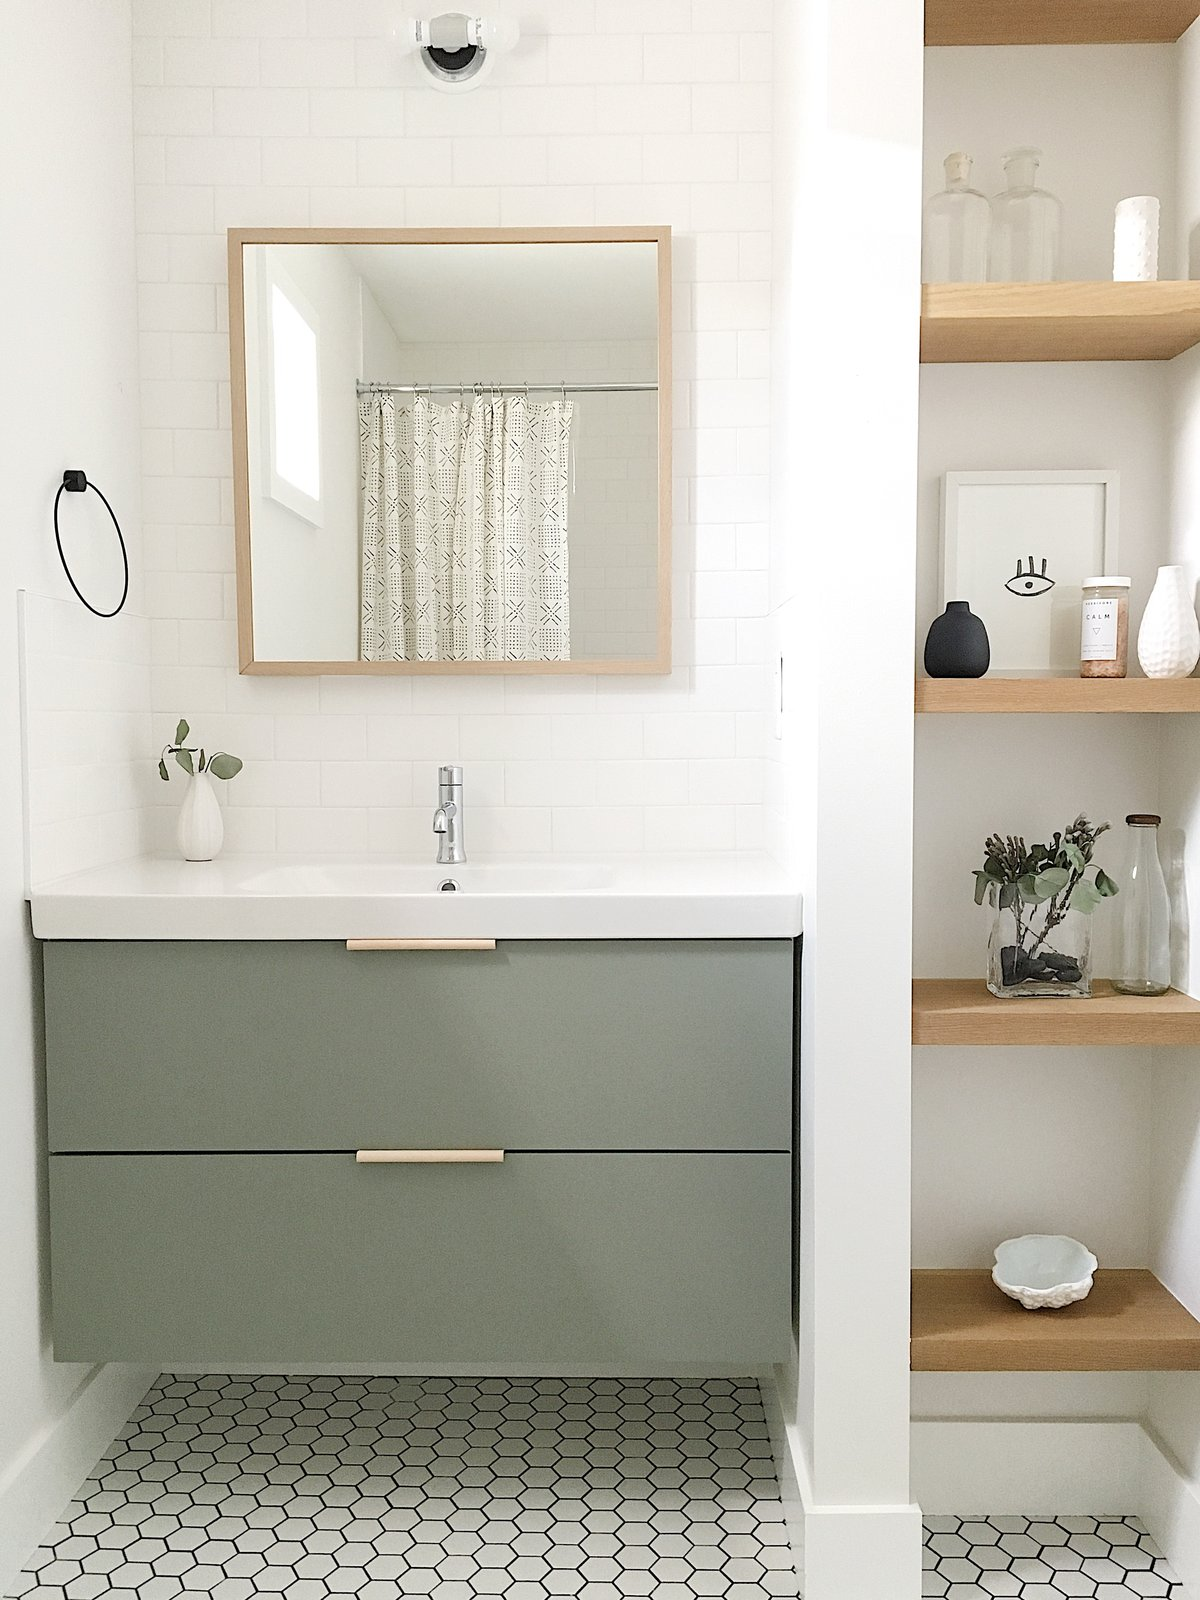 The guest bathroom utilizes a simple Ikea vanity custom painted to the perfect shade of green and features leather hardware from the Australian company Made Measure. Tagged: Bath Room, Wall Lighting, Porcelain Tile Floor, and Subway Tile Wall.  Best Photos from The Simply Simple Home